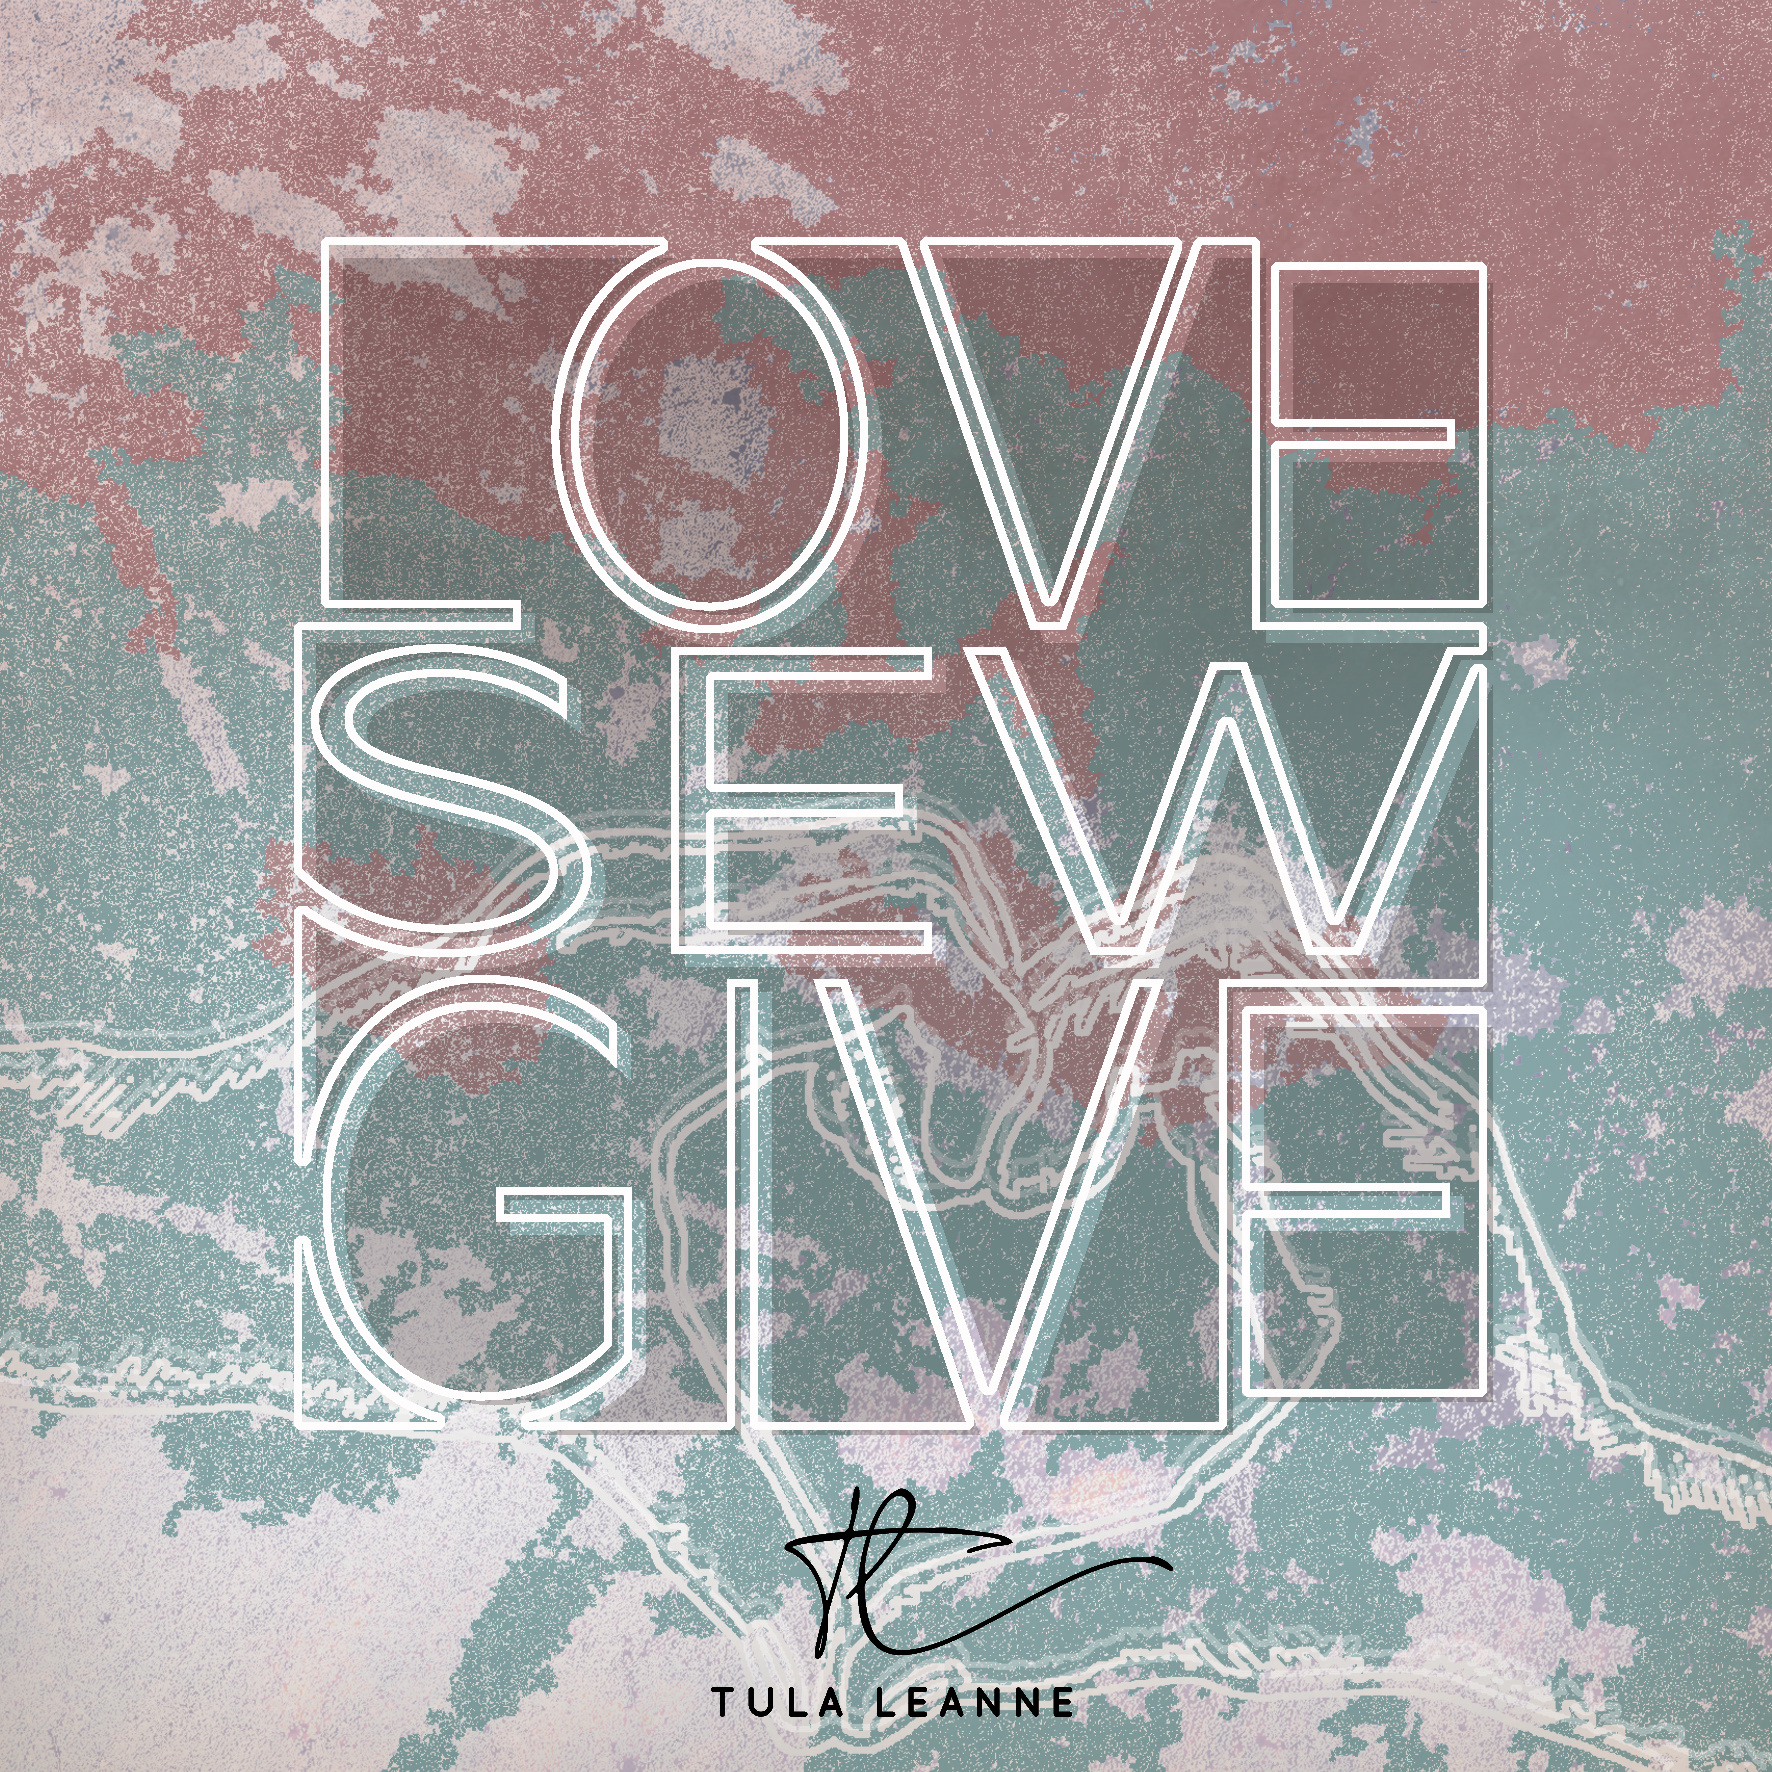 What is Love Sew Give?